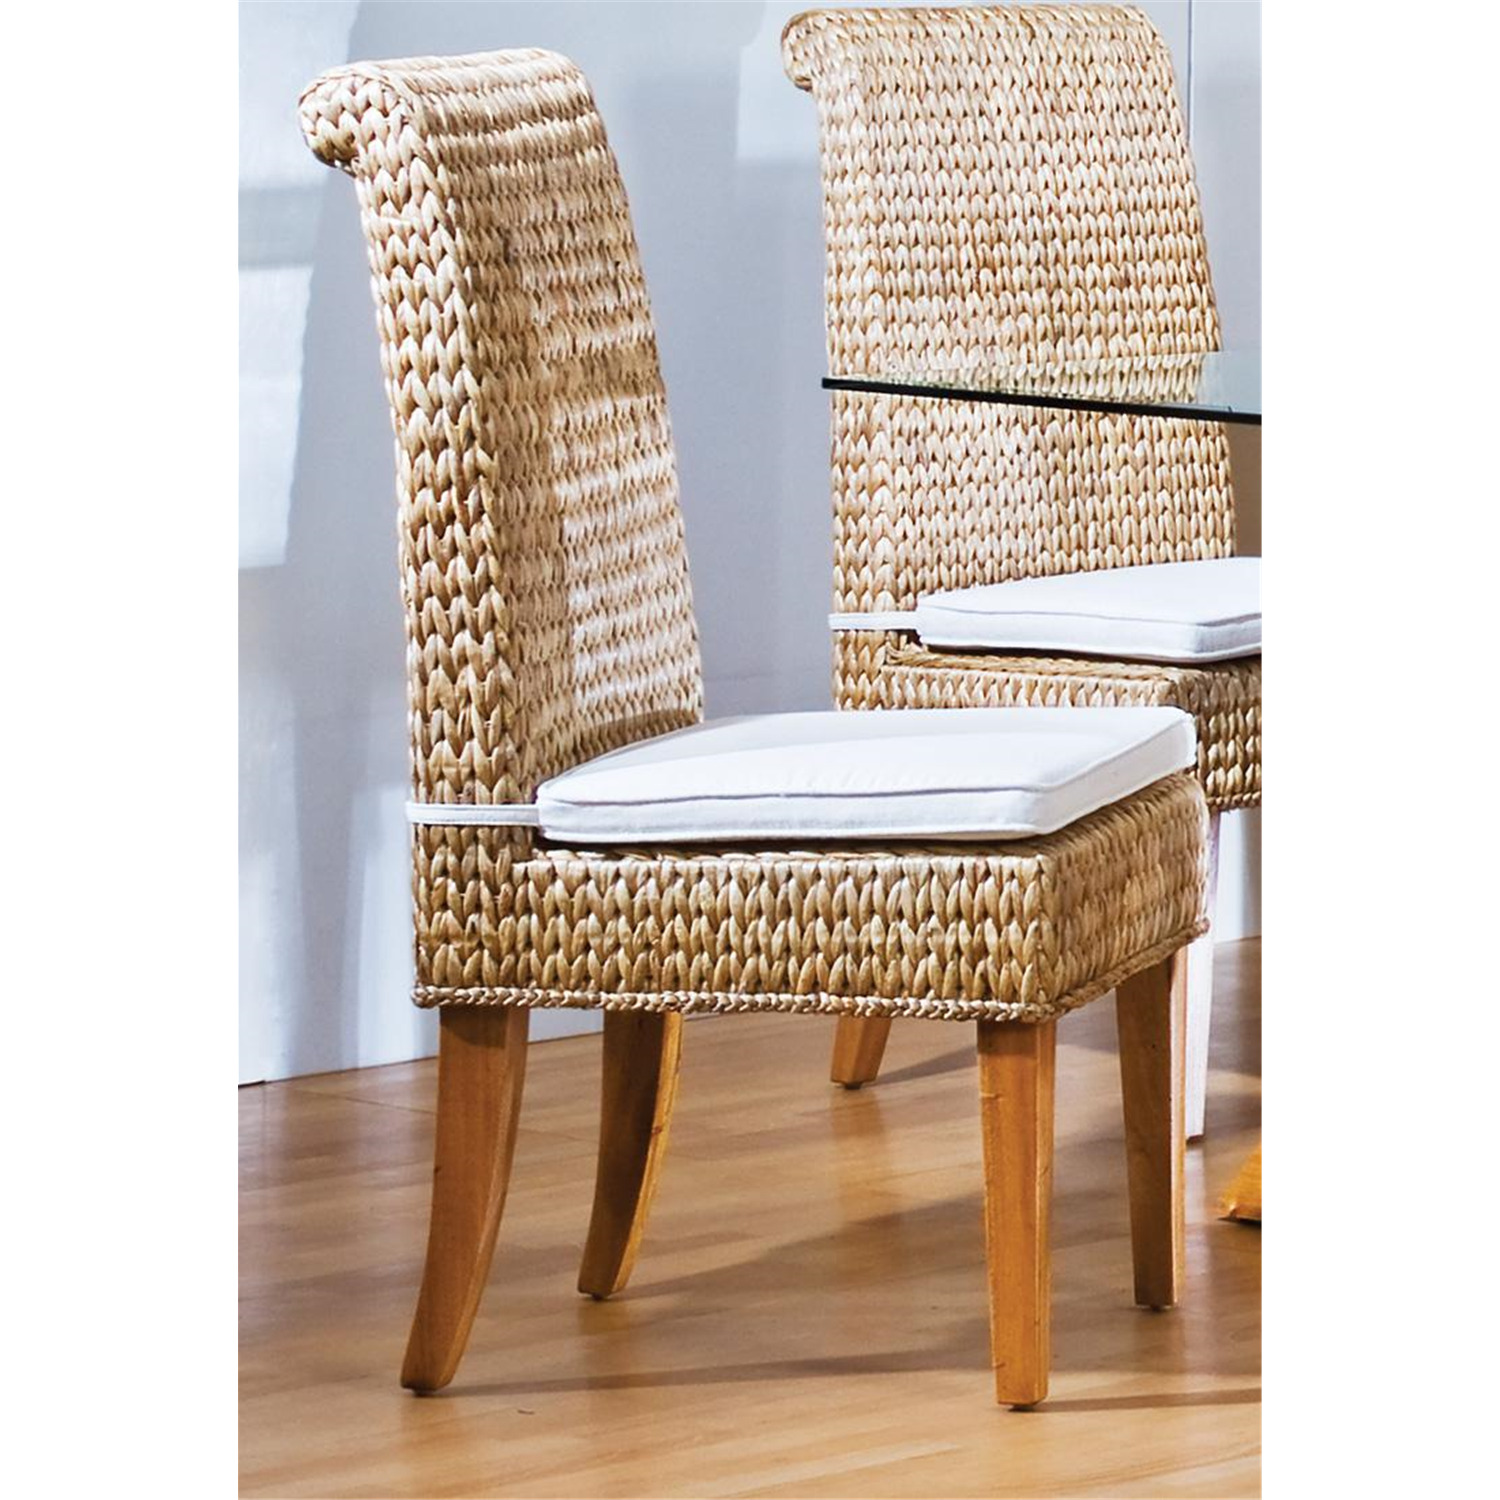 hospitality rattan indoor side chair with cushion by oj commerce 406